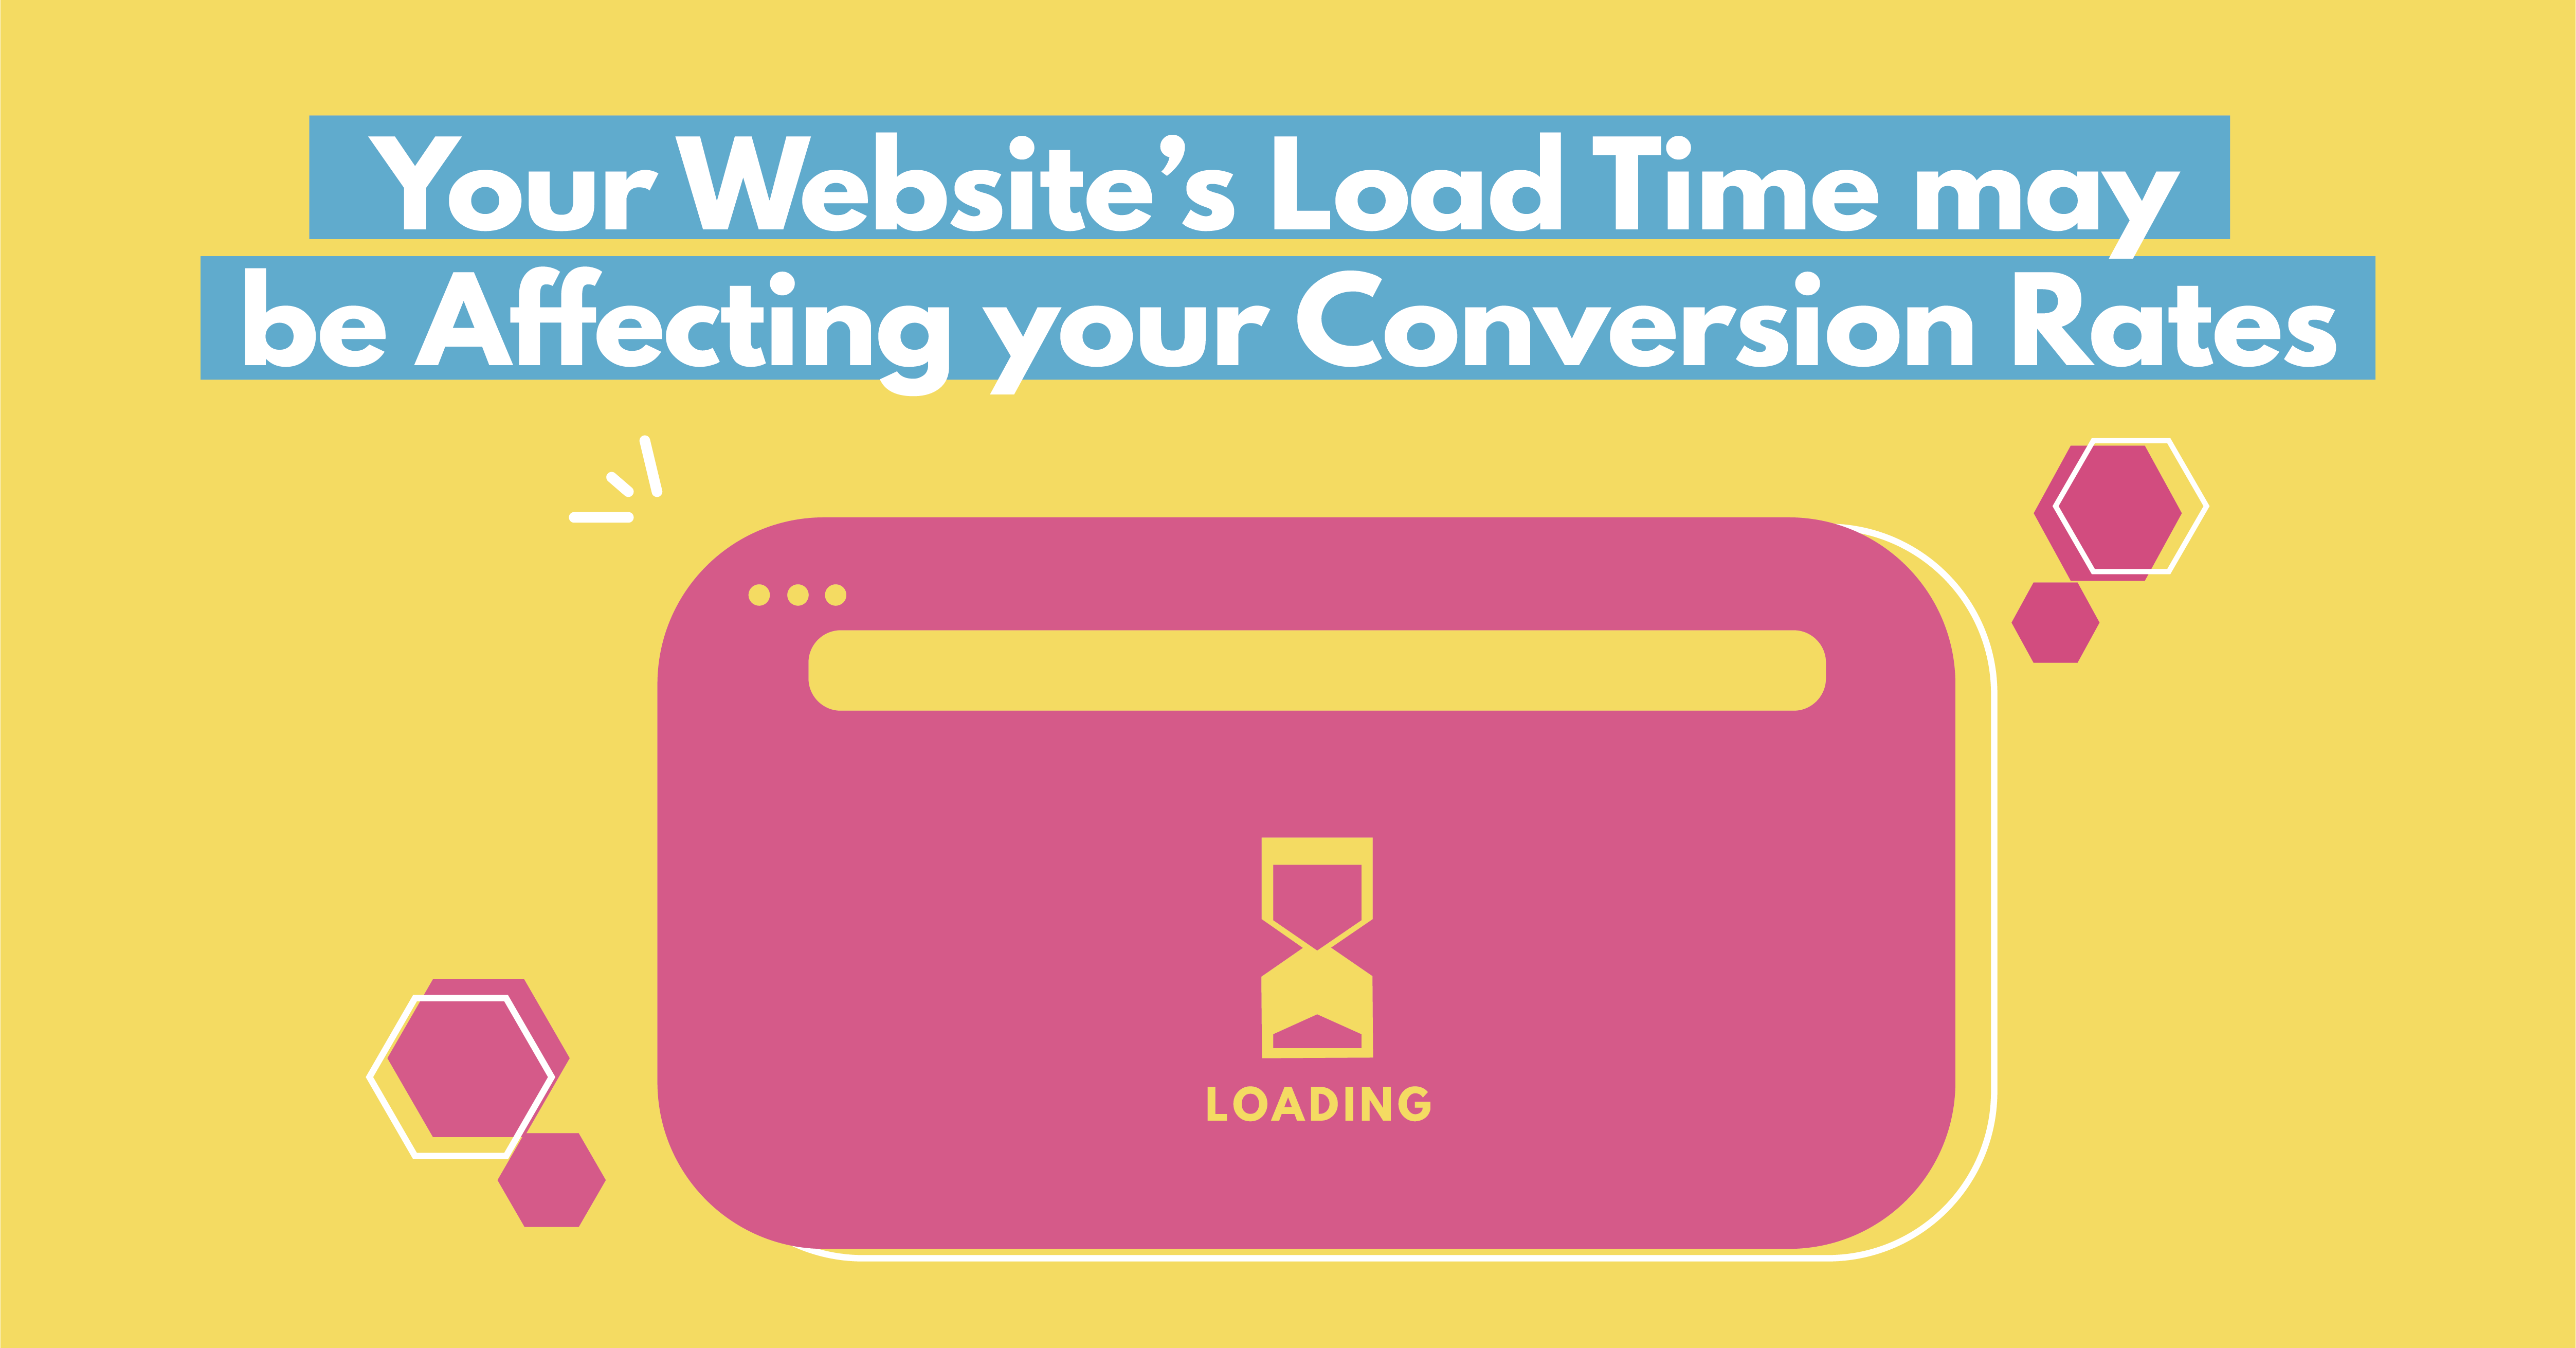 Your Website's Load Time may be Affecting your Conversion Rates by Digital Marketer Bee